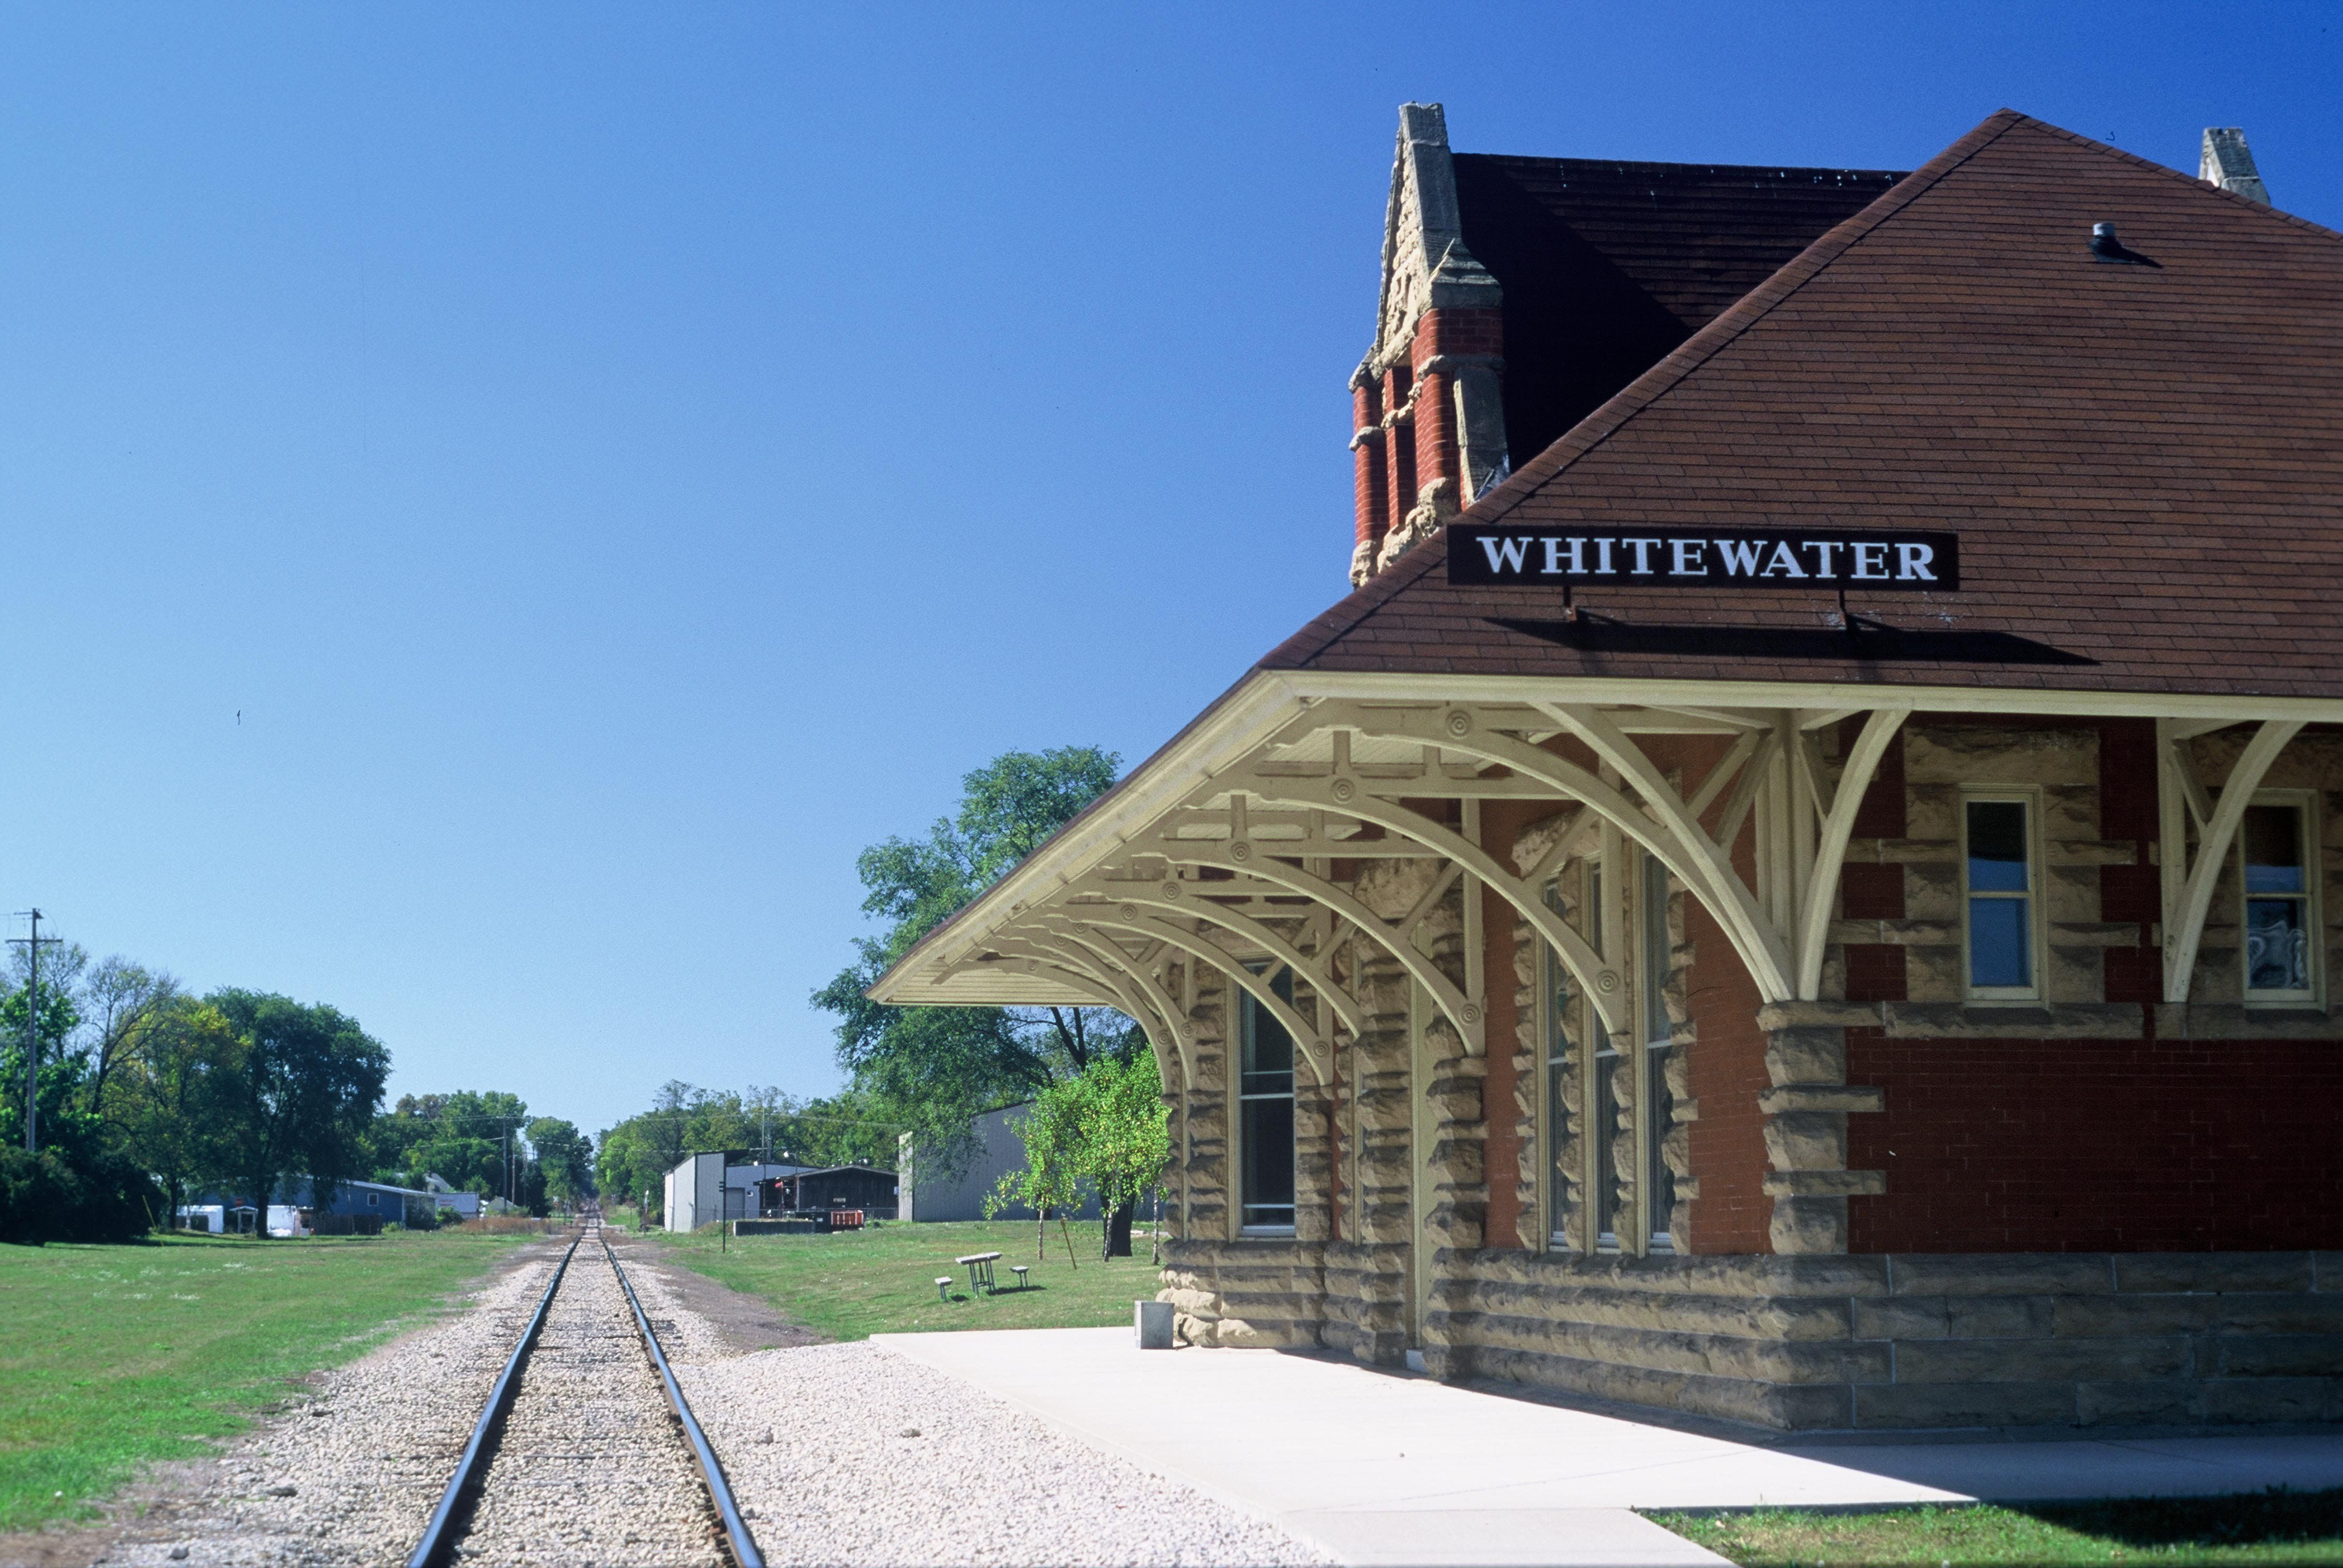 Old Train Depot Whitewater Wisconsin Old Train Depots